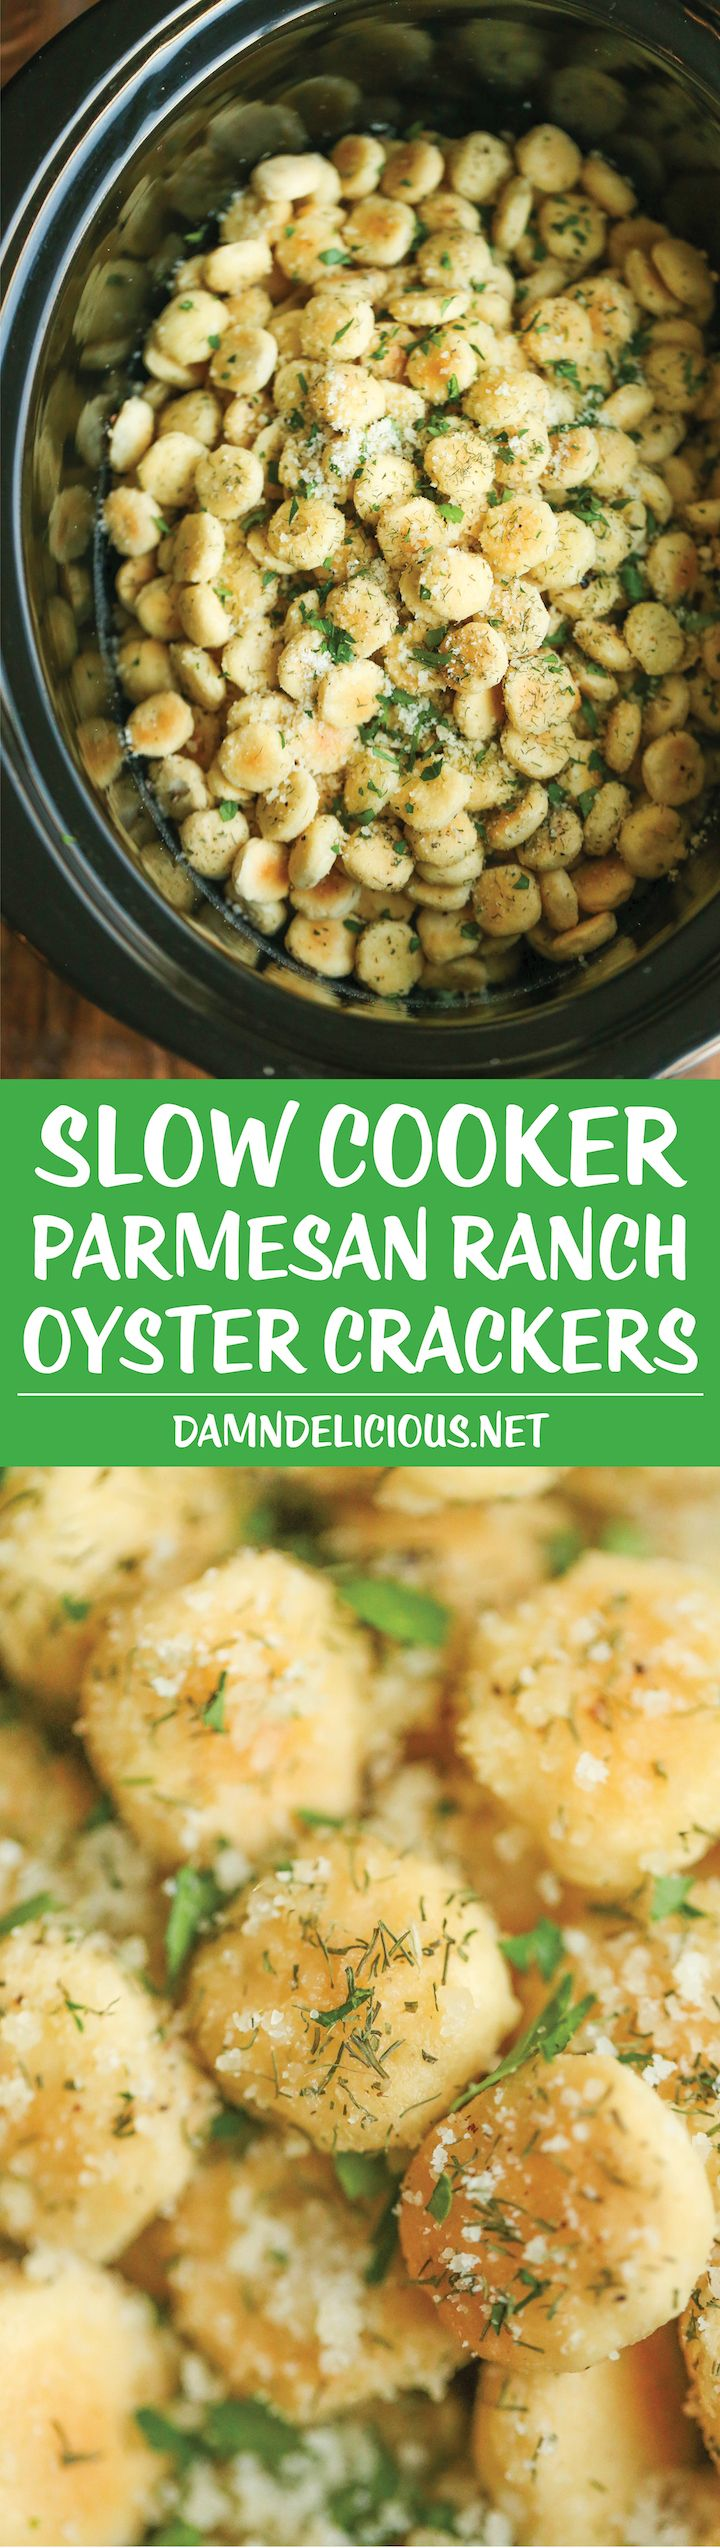 Slow Cooker Parmesan Ranch Oyster Crackers - Perfect for snacking or feeding a…